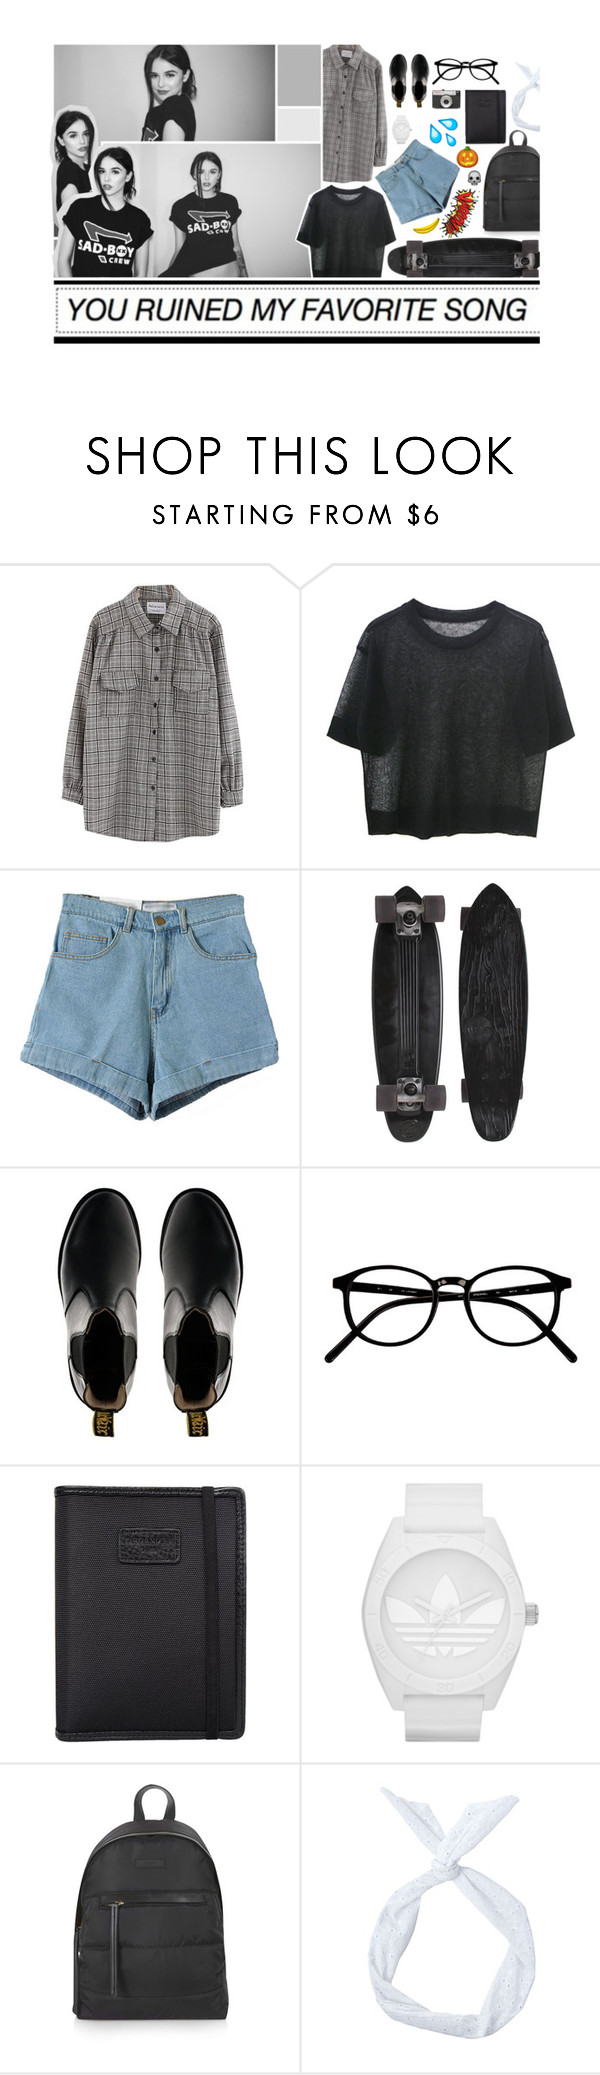 """谜 It's your loss if you want to love me, but your friends will think you're much better than that"" by maydaypvrade ❤ liked on Polyvore featuring Chicnova Fashion, Dr. Martens, LØMO, Nava, adidas and Topshop"